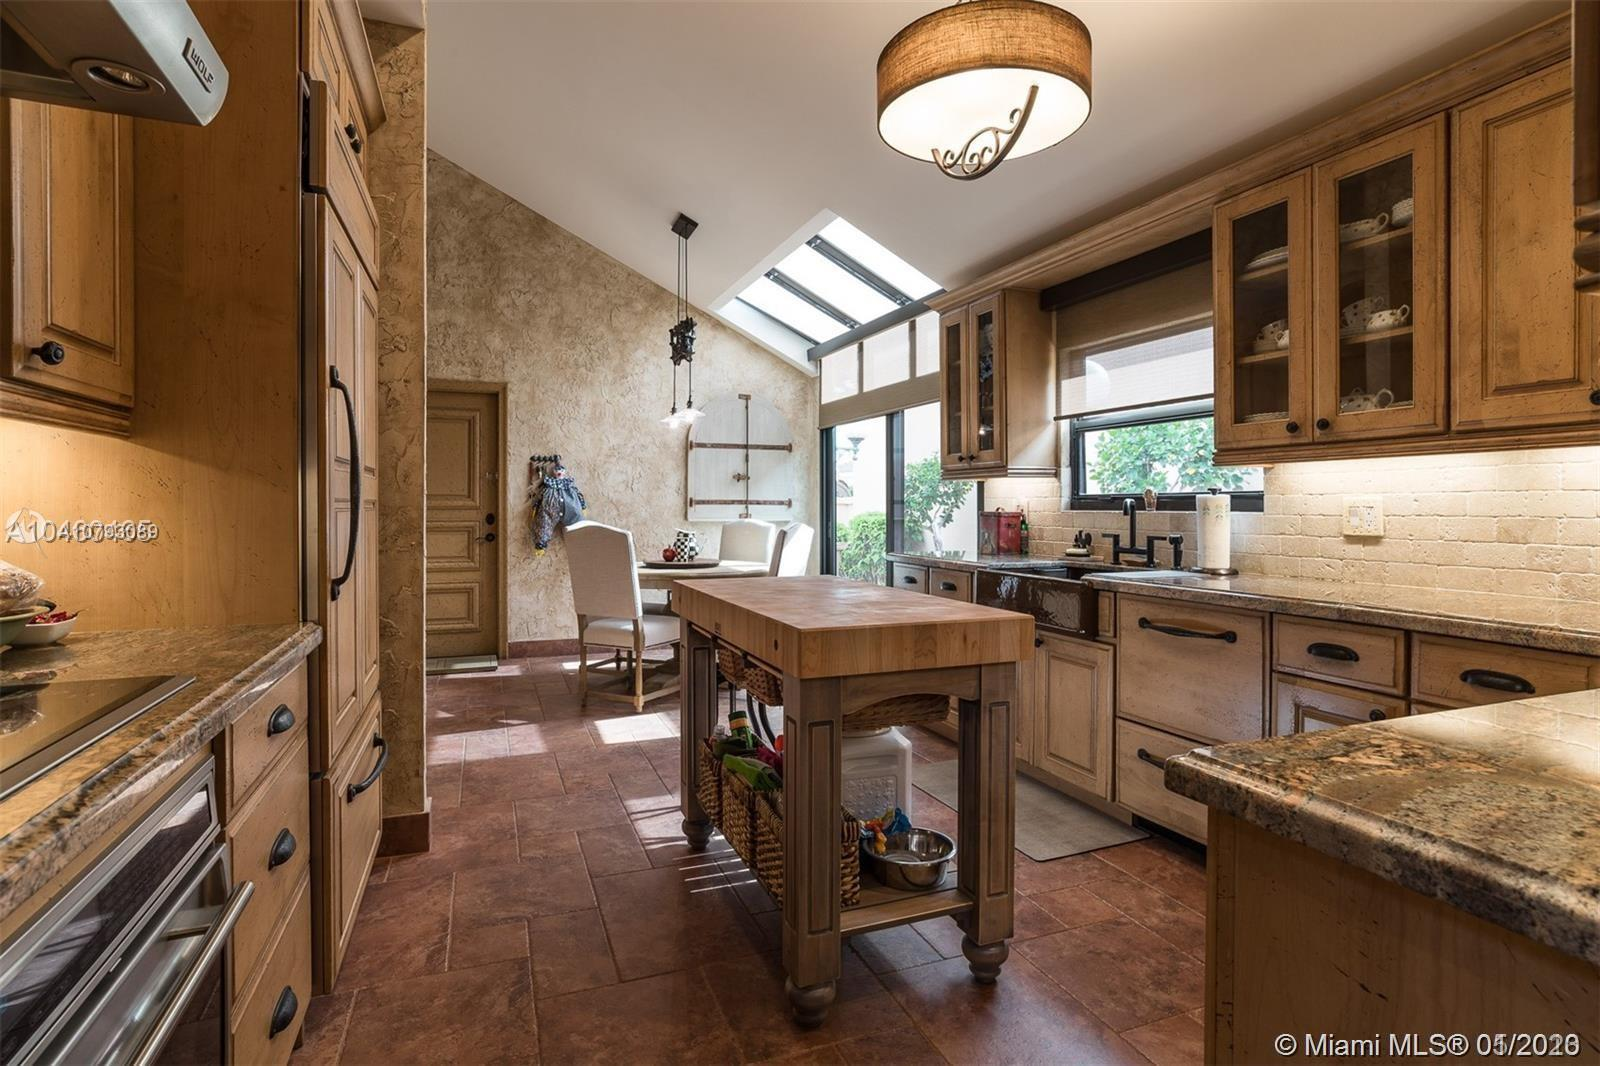 Captivating and spacious 2 bedroom, 2.5 bath turnkey home located within the peaceful Villa D' Este